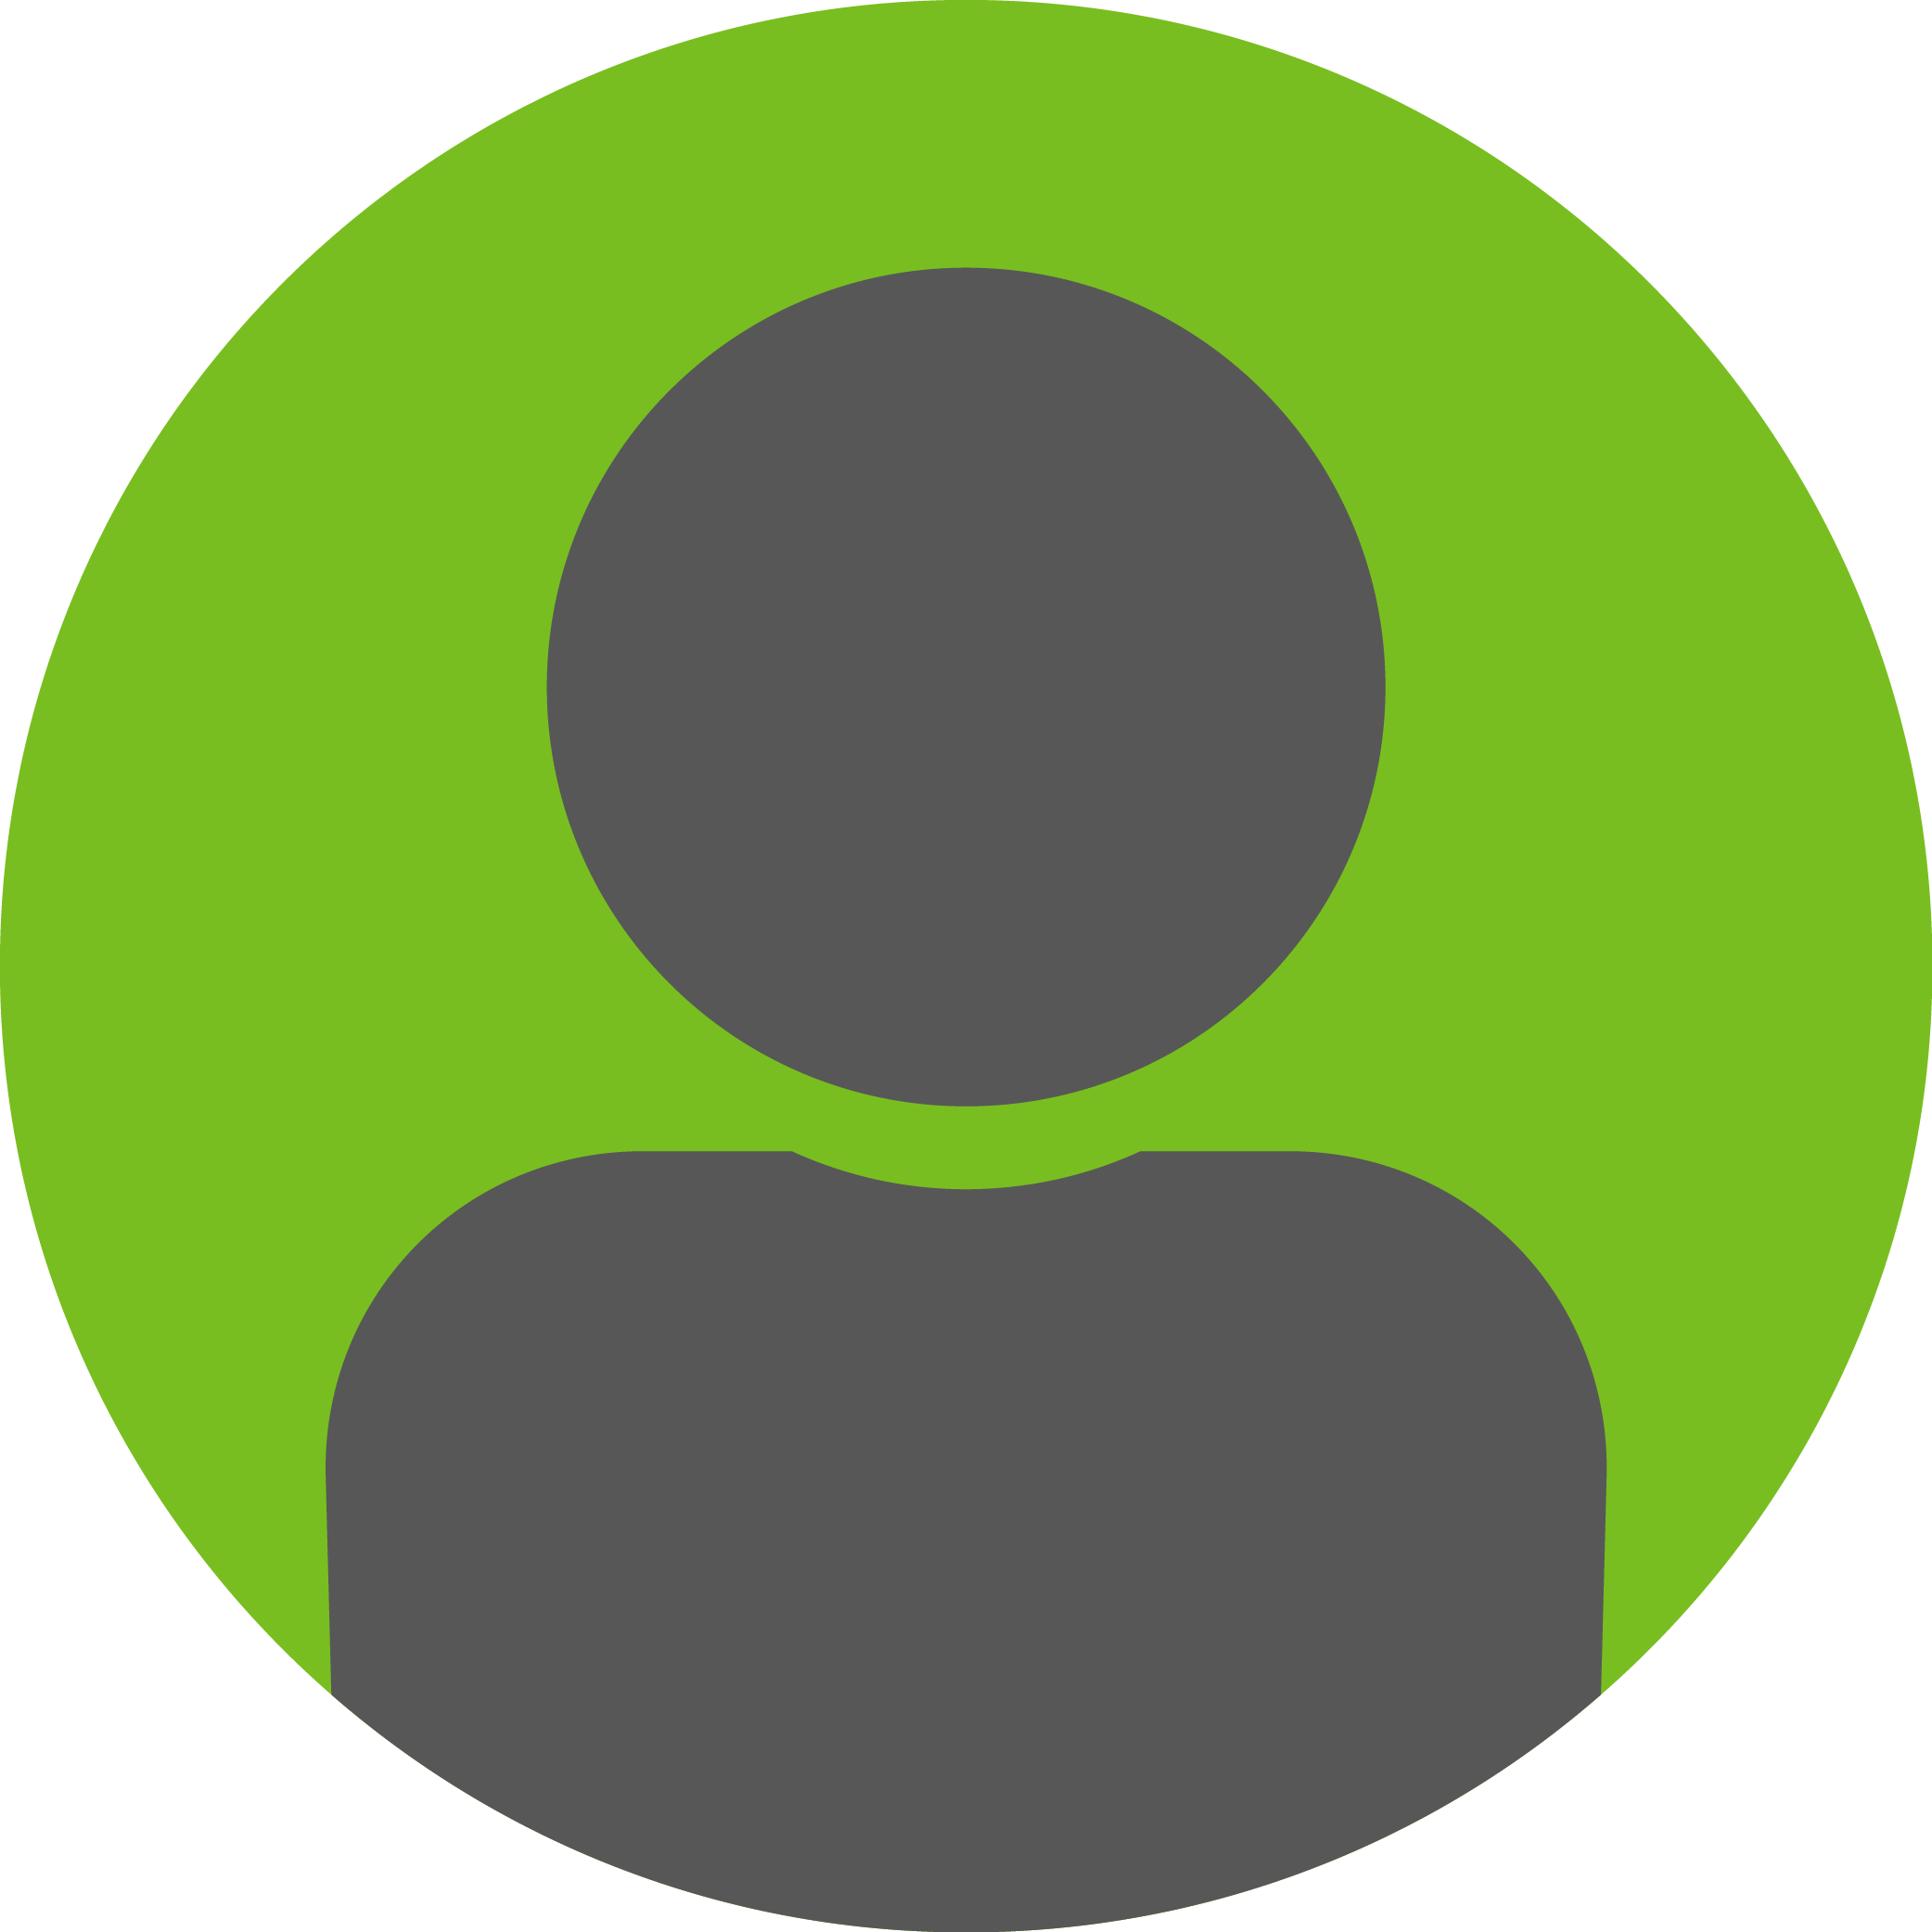 One avatar in dark grey on a lime green background.